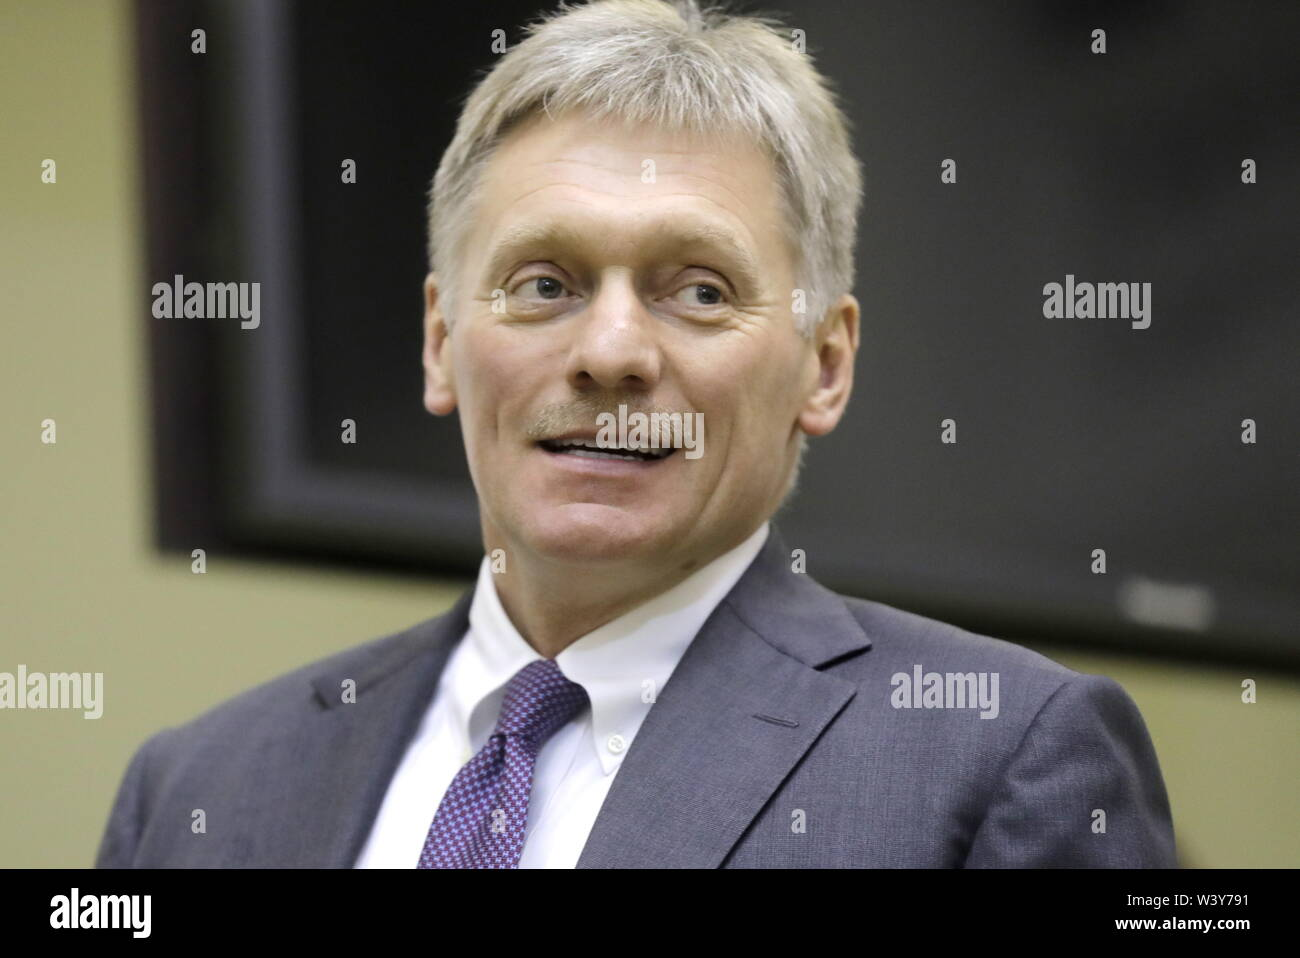 St Petersburg, Russia. 18th July, 2019. ST PETERSBURG, RUSSIA - JULY 18, 2019: Russia's Presidential Spokesman Dmitry Peskov attends a meeting between the Presidents of Russia and Belarus at the Tauride Palace. Mikhail Metzel/TASS Credit: ITAR-TASS News Agency/Alamy Live News - Stock Image